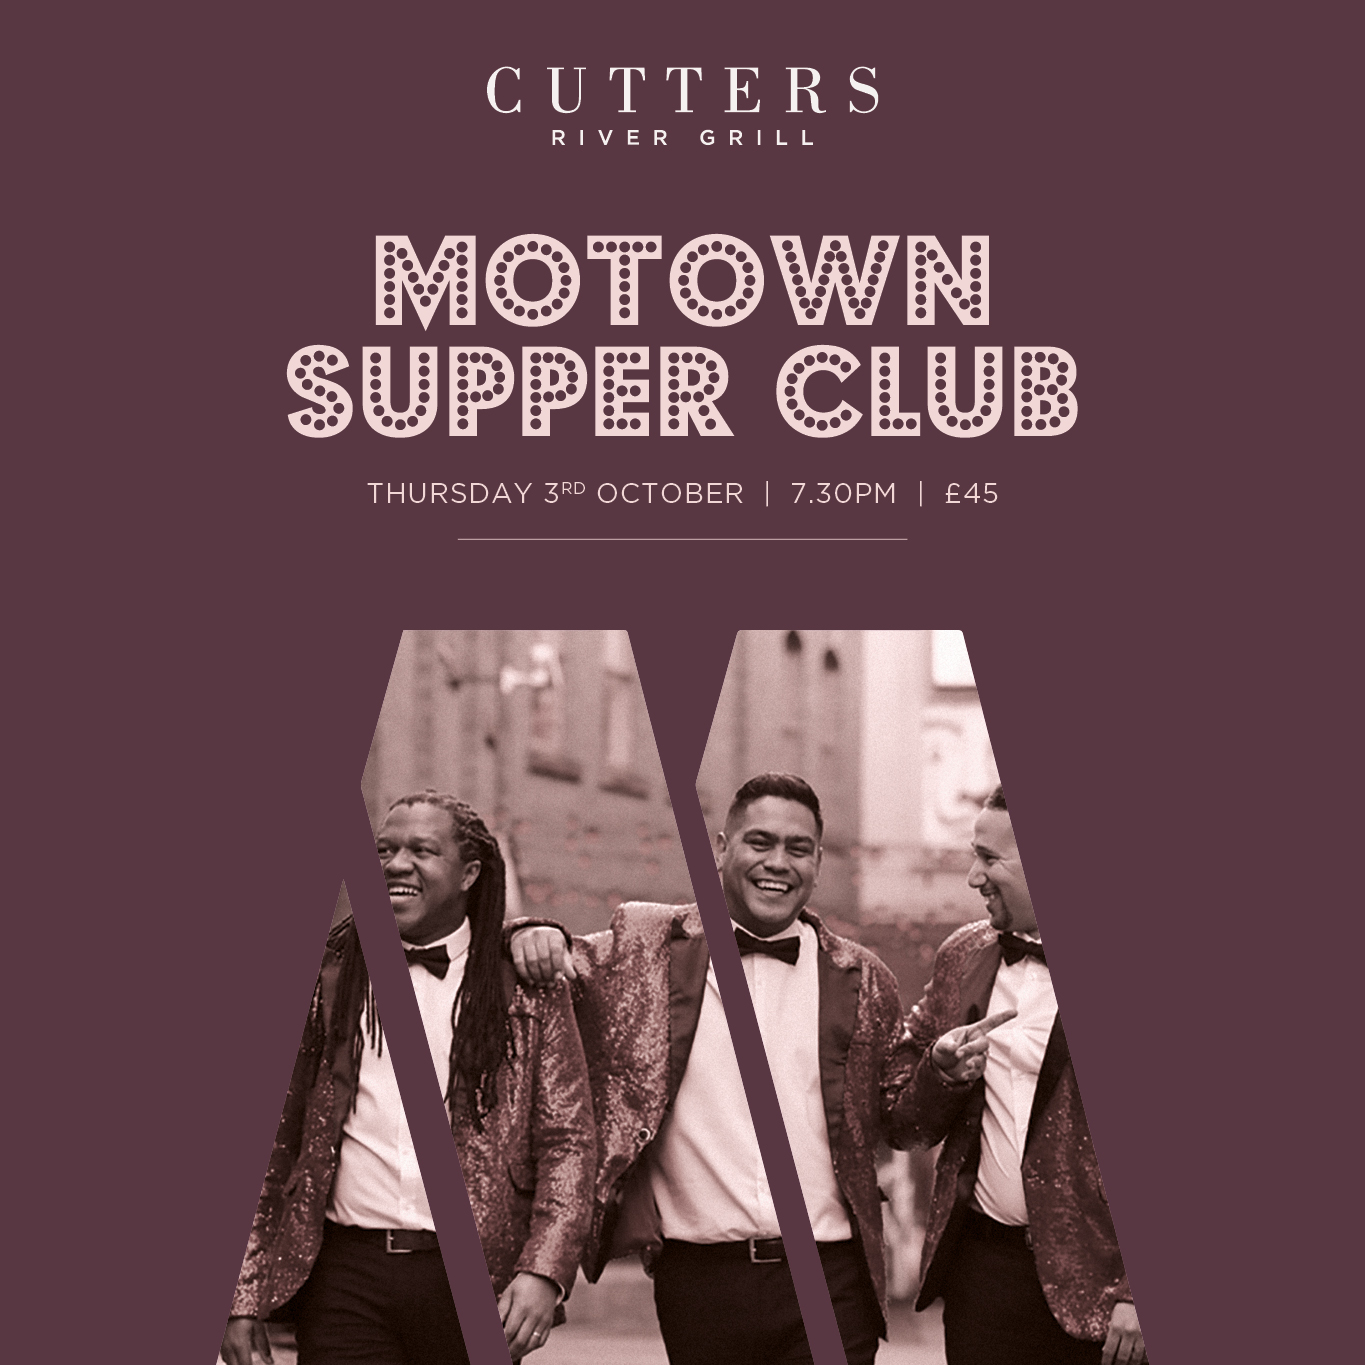 Cutters River Grill Motown Supper Club 3 Oct 2019 Social WEB